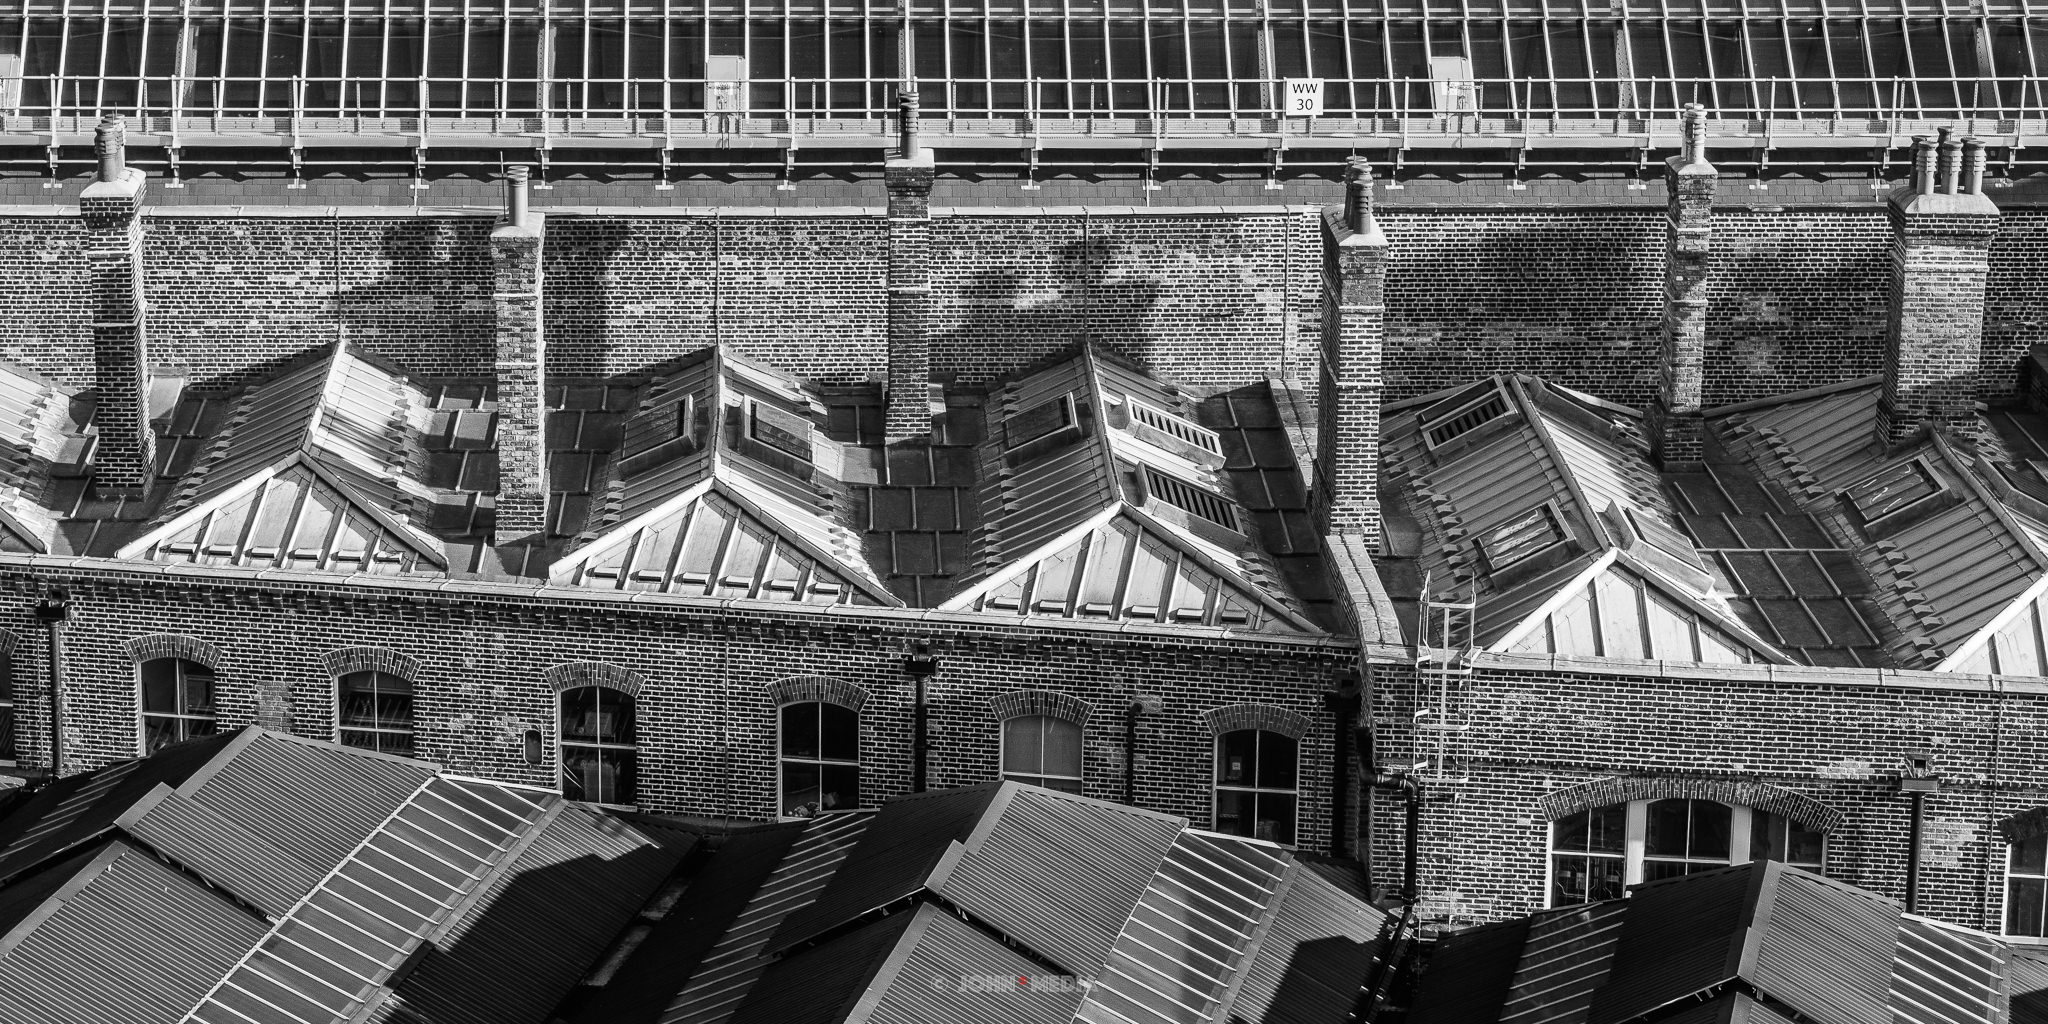 London Kings Cross rooftops